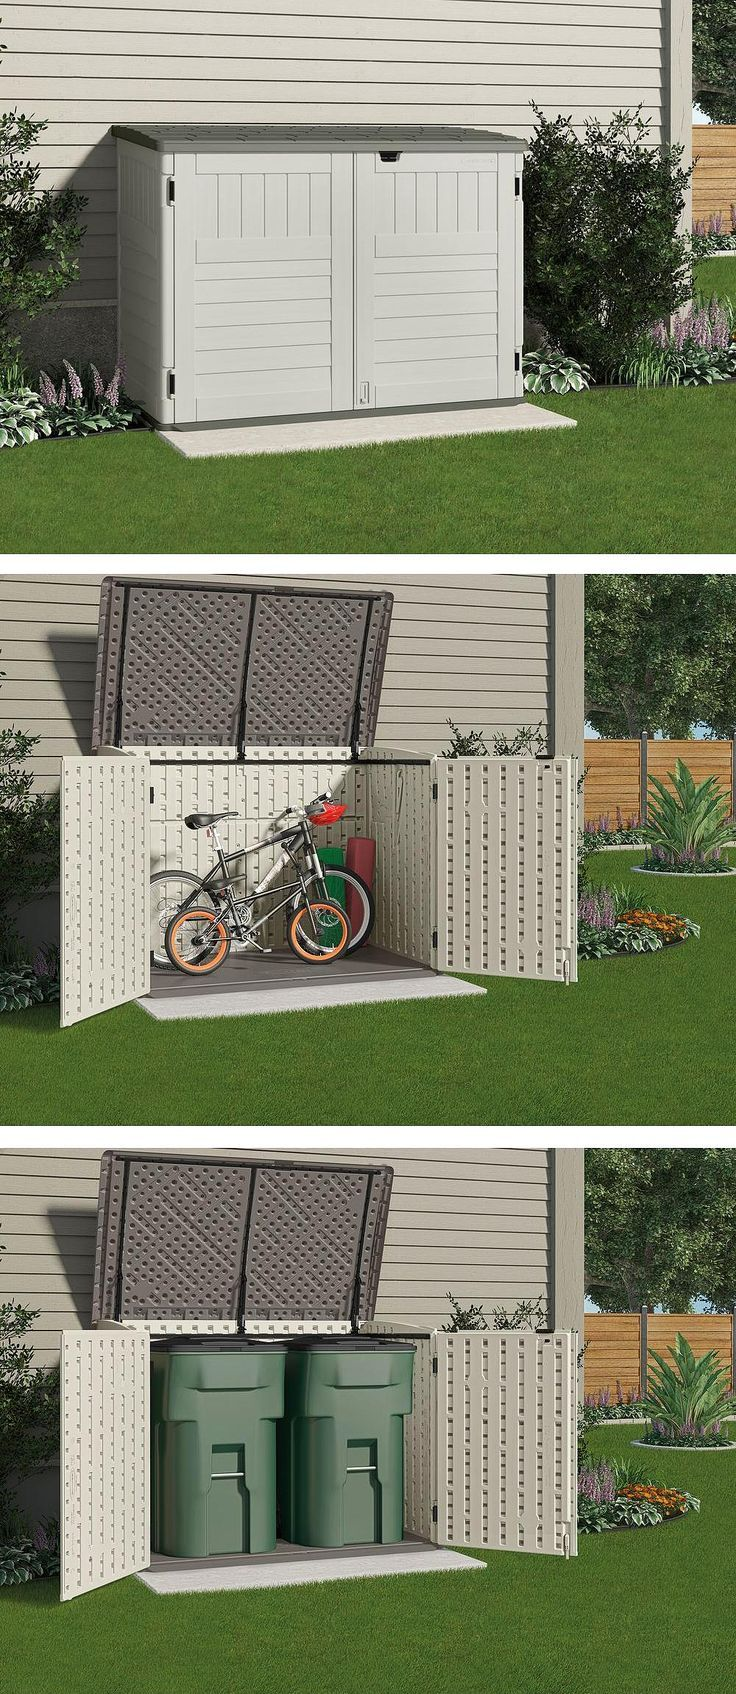 This Small Storage Shed Is Just The Right Size To Store Your Bicycles  Safely Or To Hide Garbage Cans. It Wonu0027t Take Up A Lot Of Room From Your  Backyard Or ...